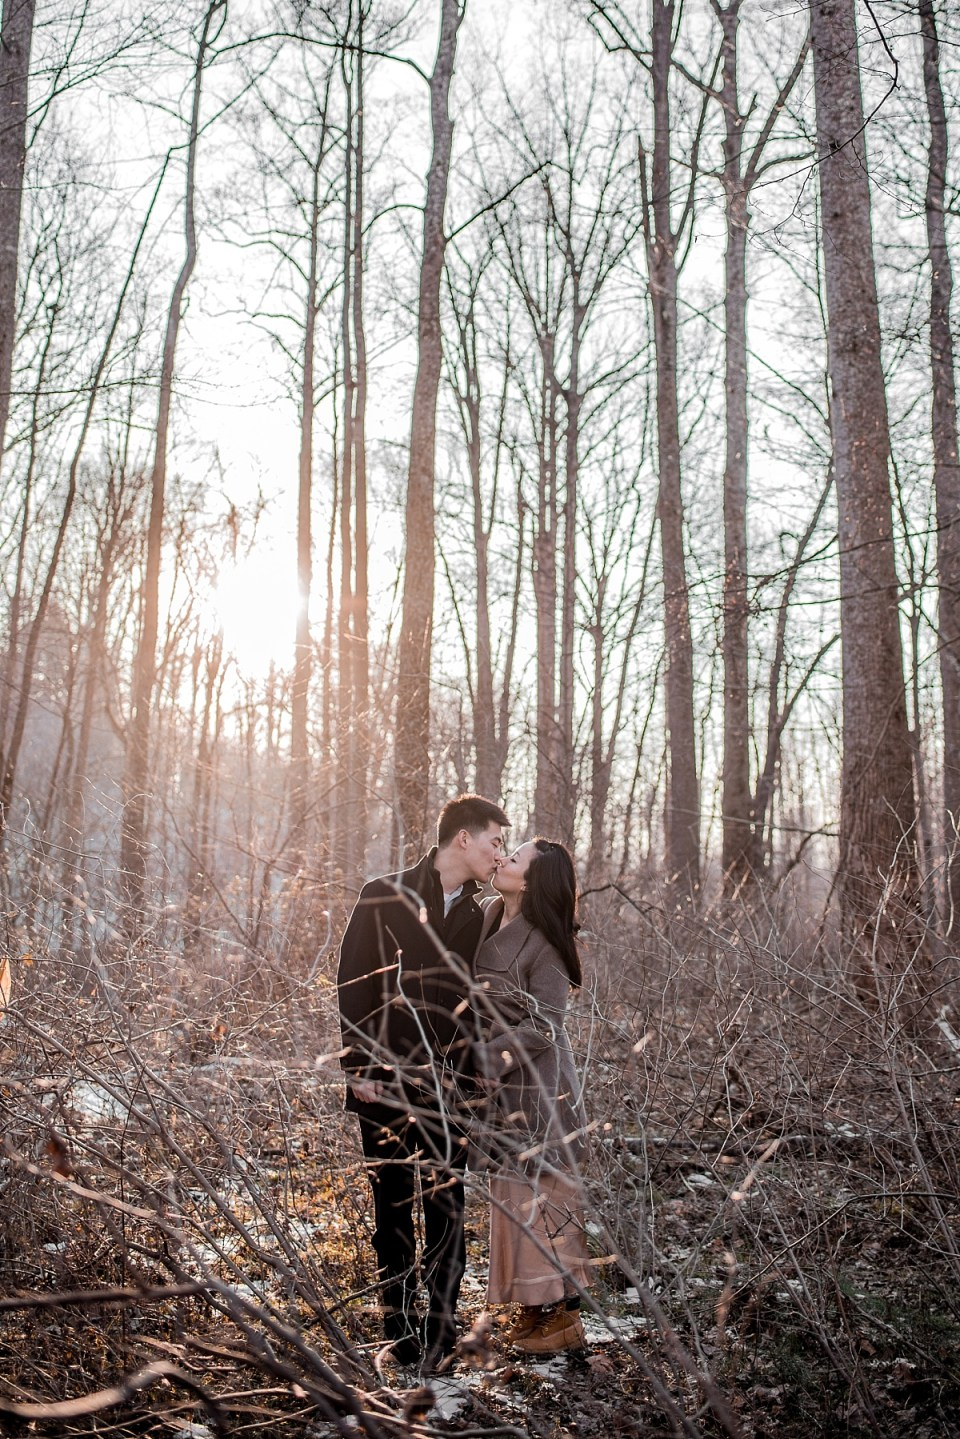 Clifton_Virginia_Engagement_Session_Erin_Tetterton_Photography_0017.jpg